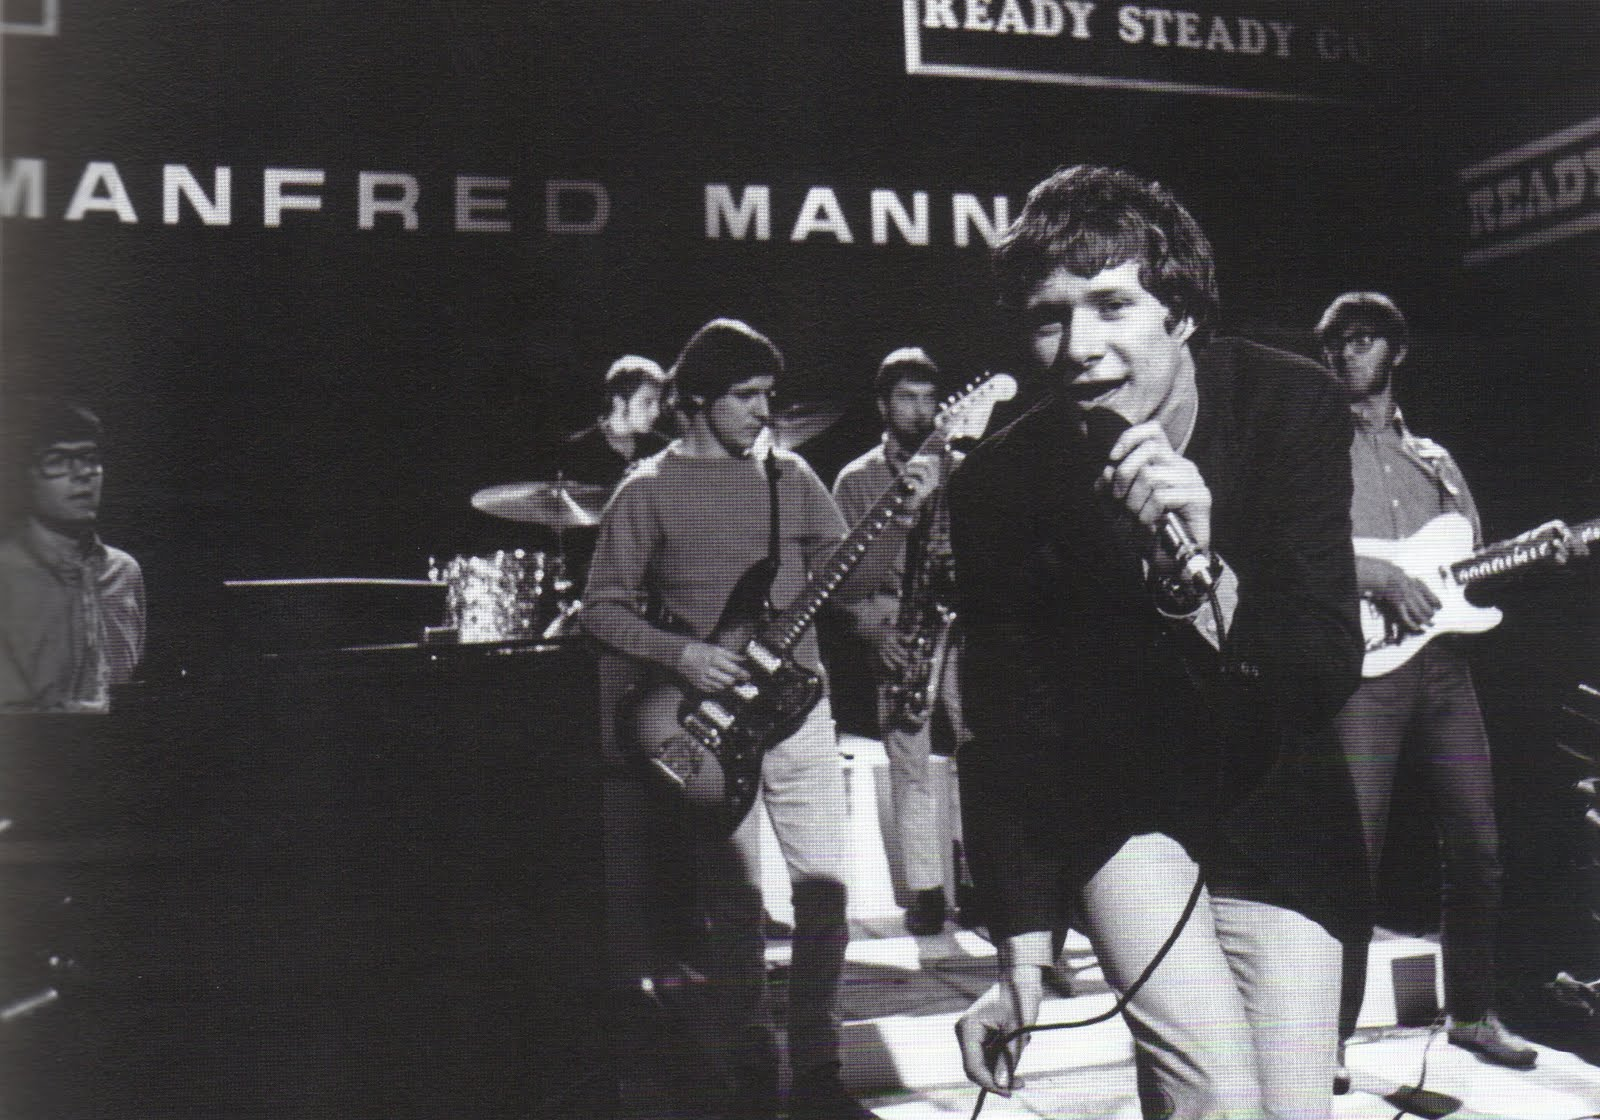 Manfred Mann - Taken From The Cohesion Album 'The Evolution Of Manfred Mann